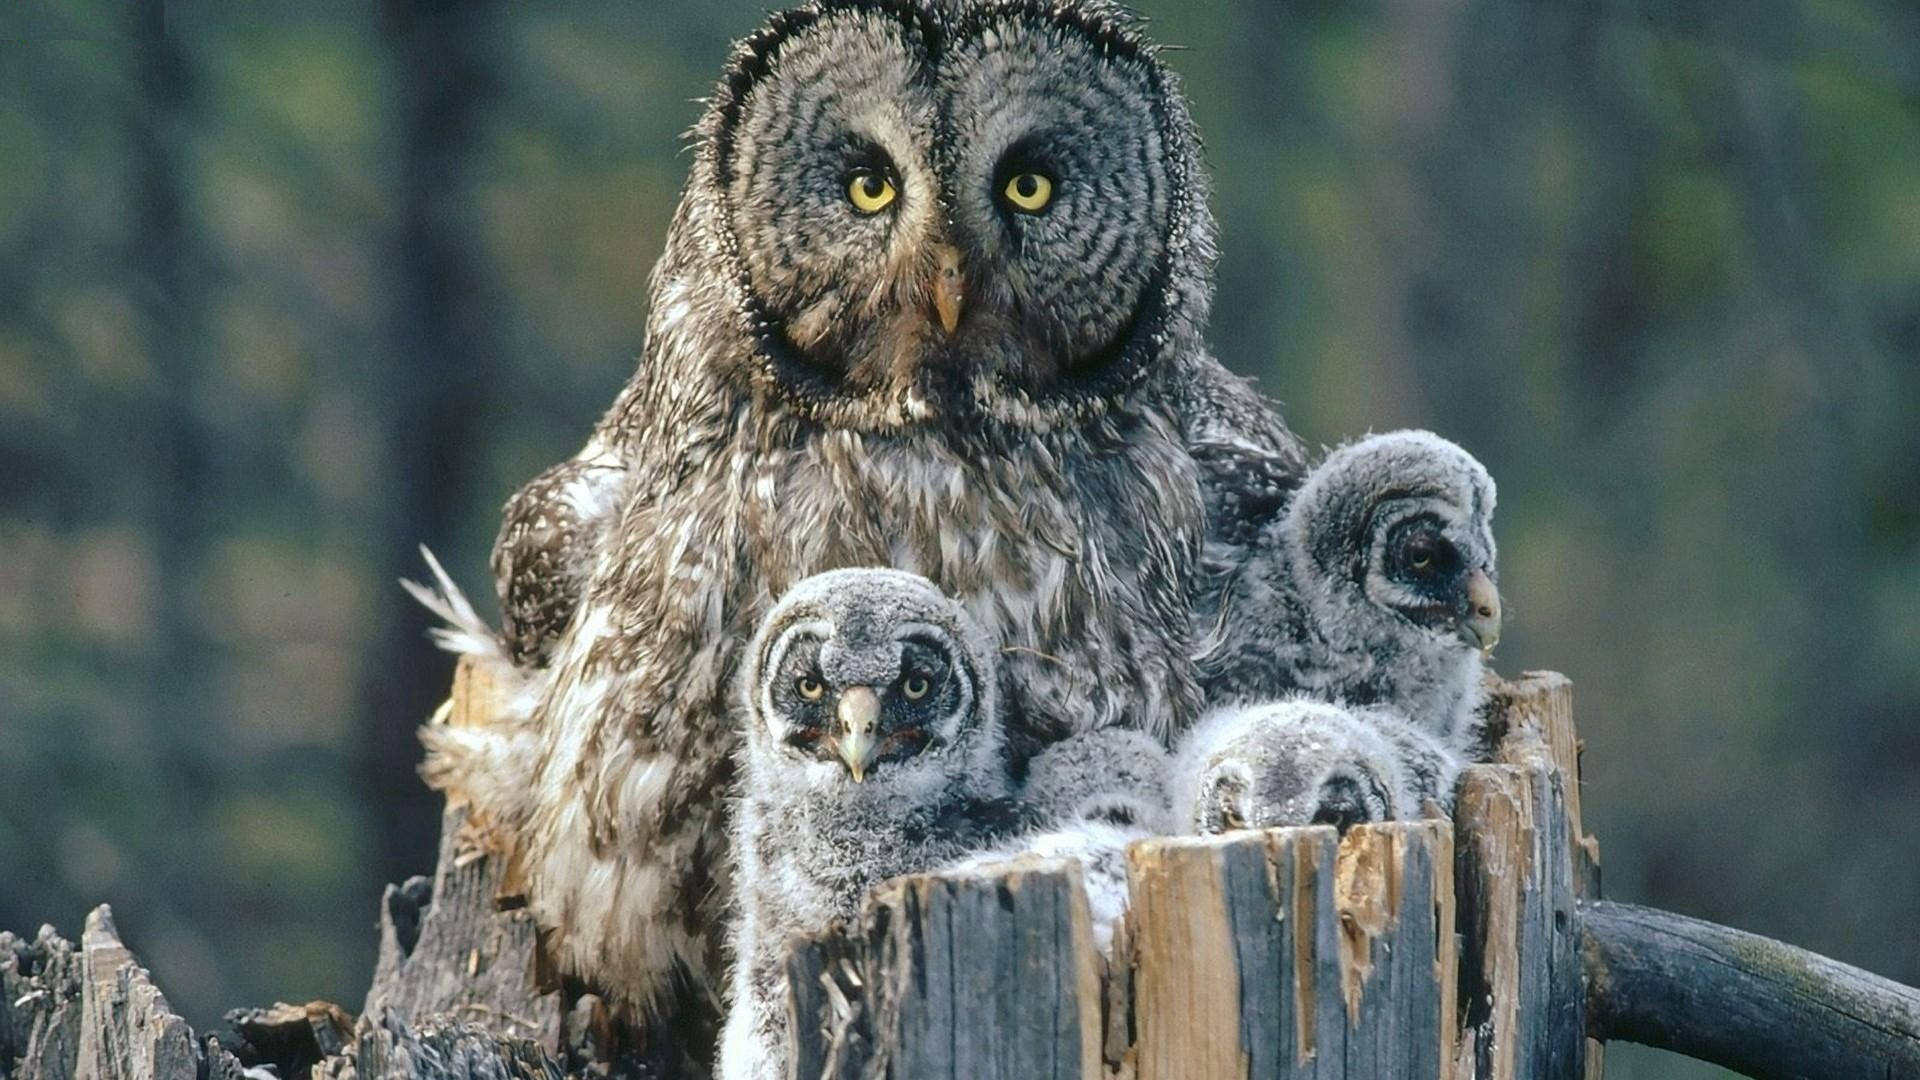 Birds-Family-Owls-Backgrounds-Baby-High-Resolution-Pictures-1920×1080 (1)